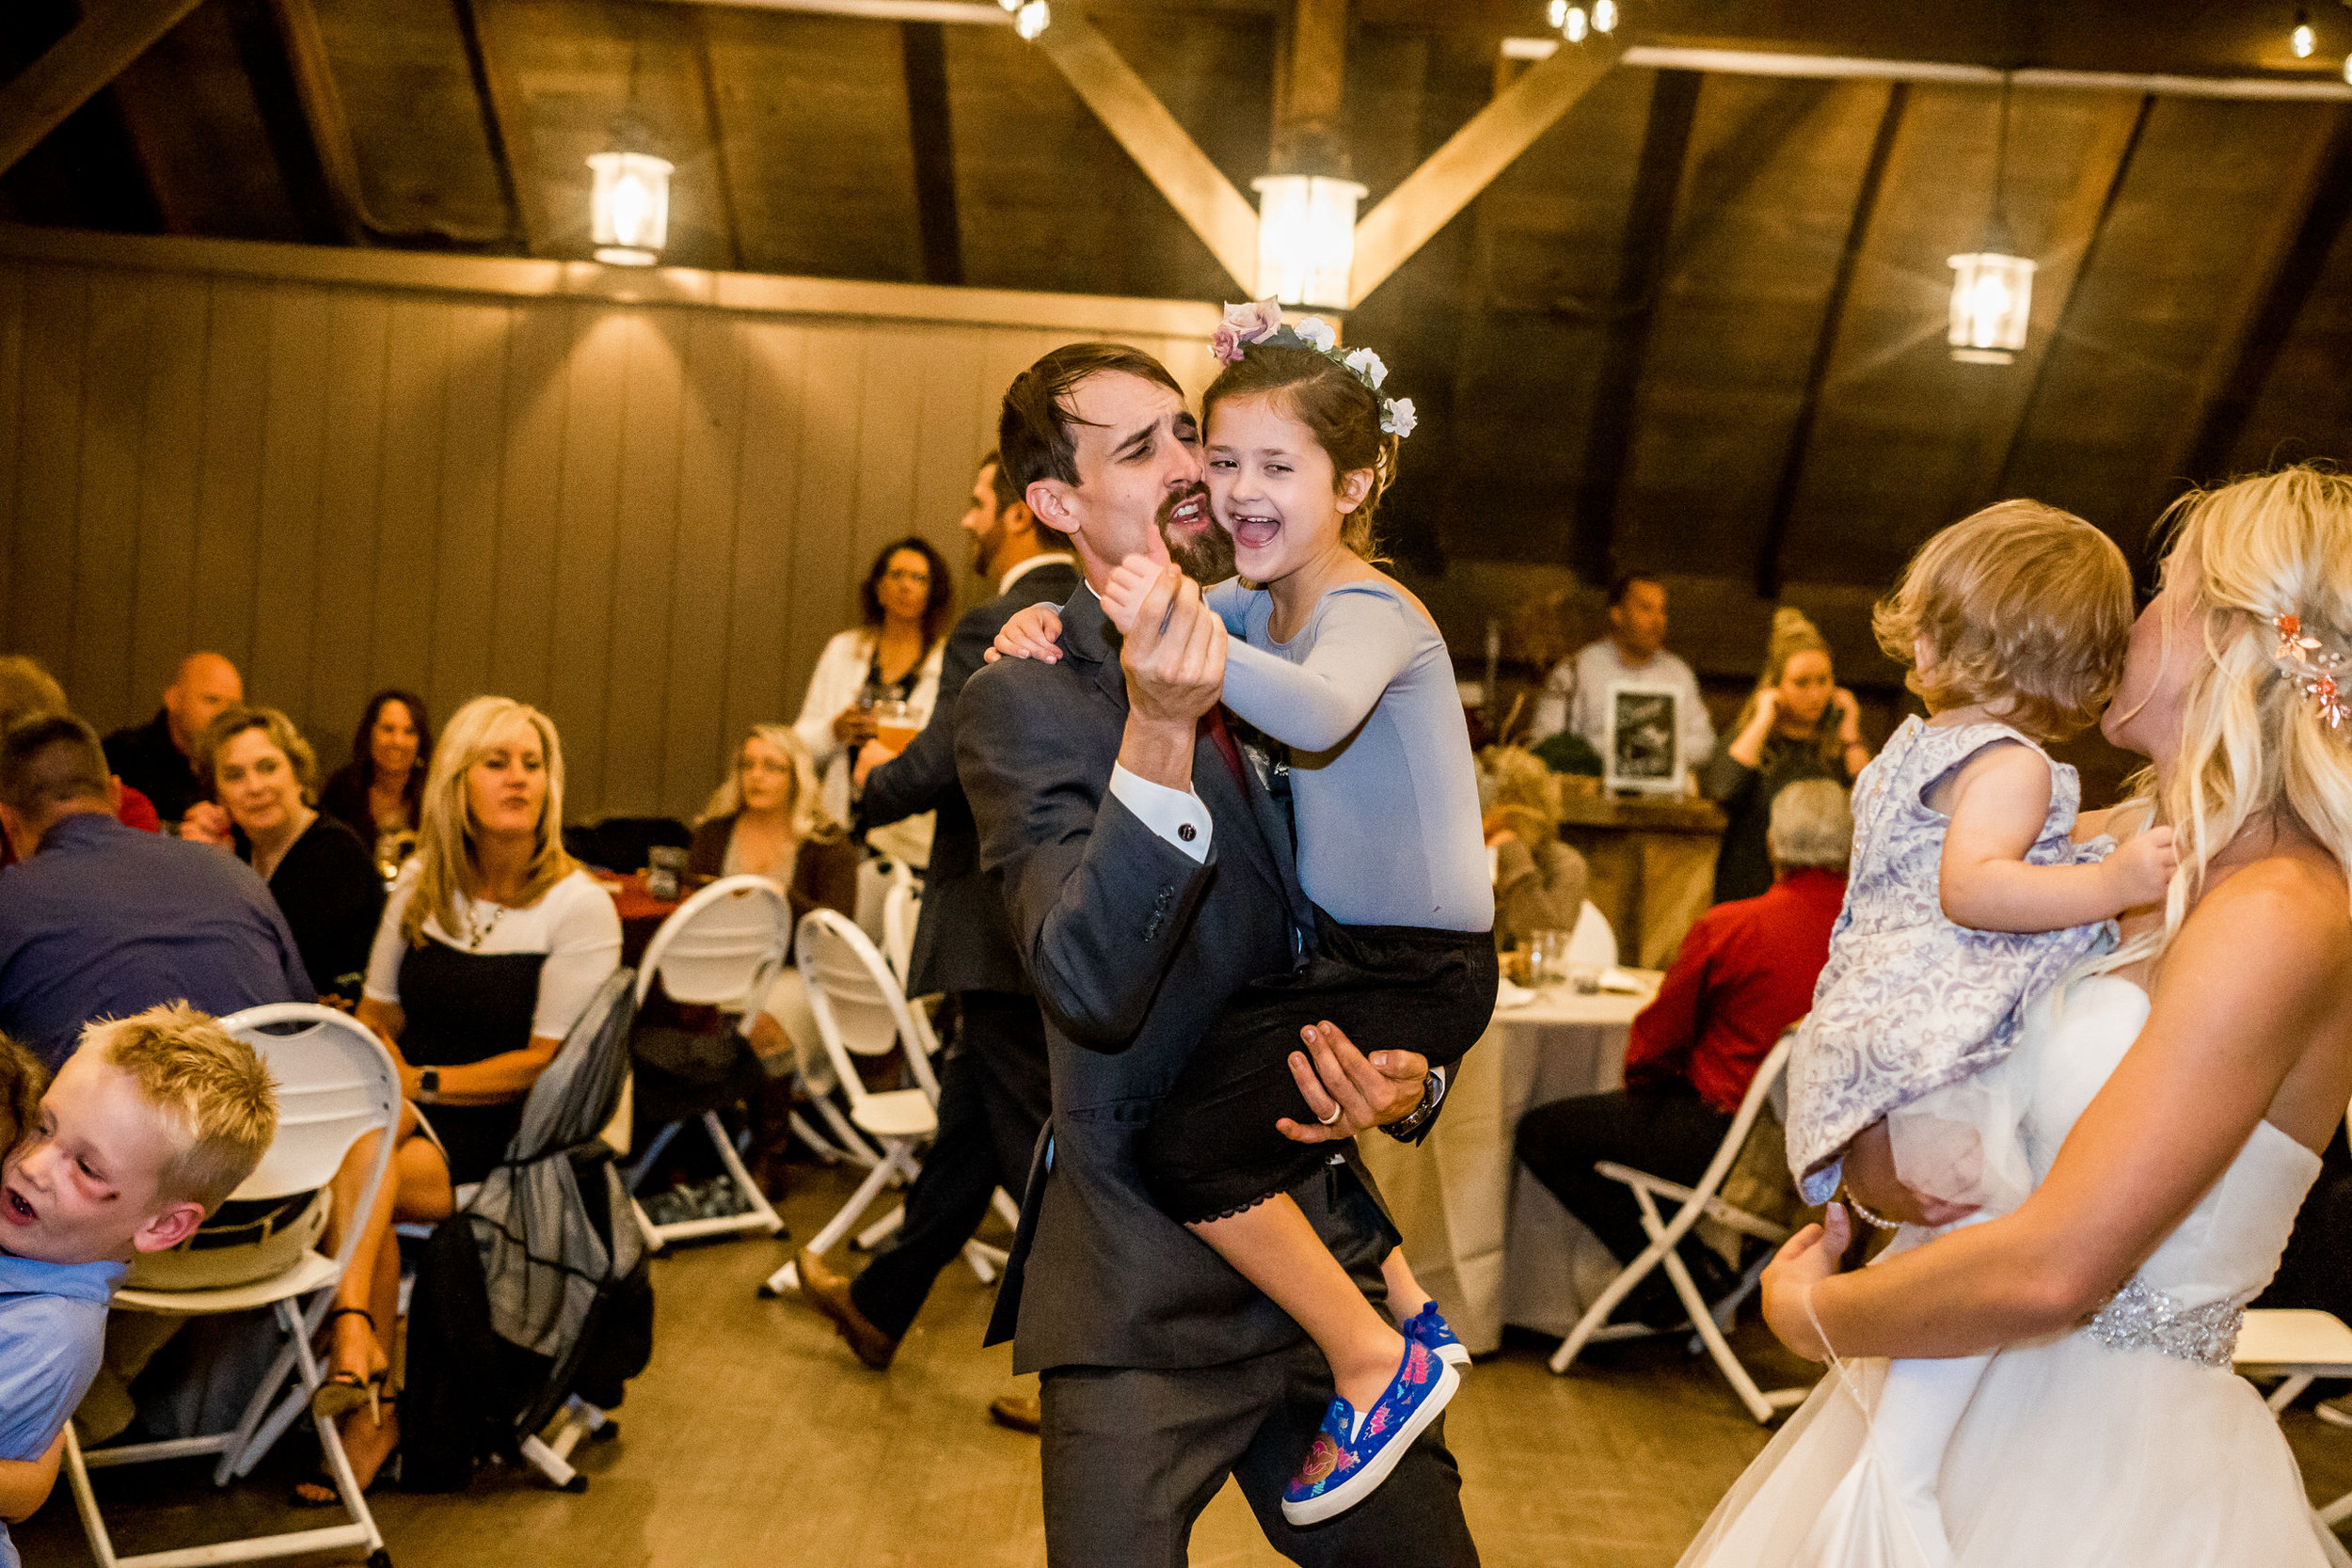 Dayton Ohio Wedding Photography 12091.JPG